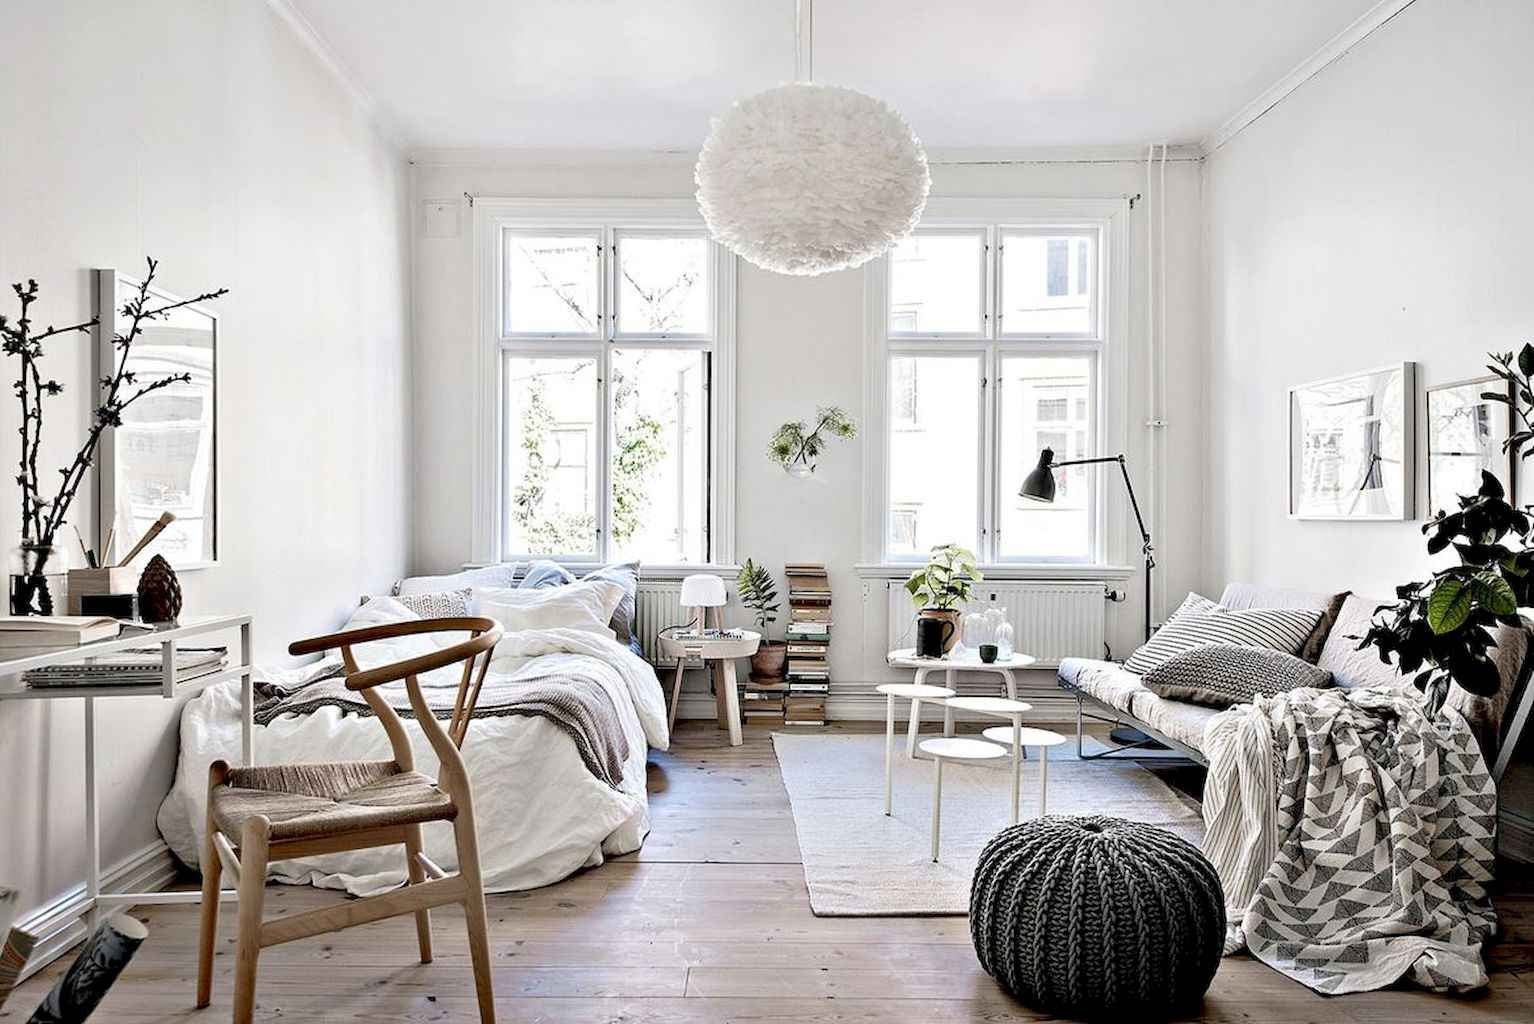 Small apartment studio decorating ideas on a budget (70)